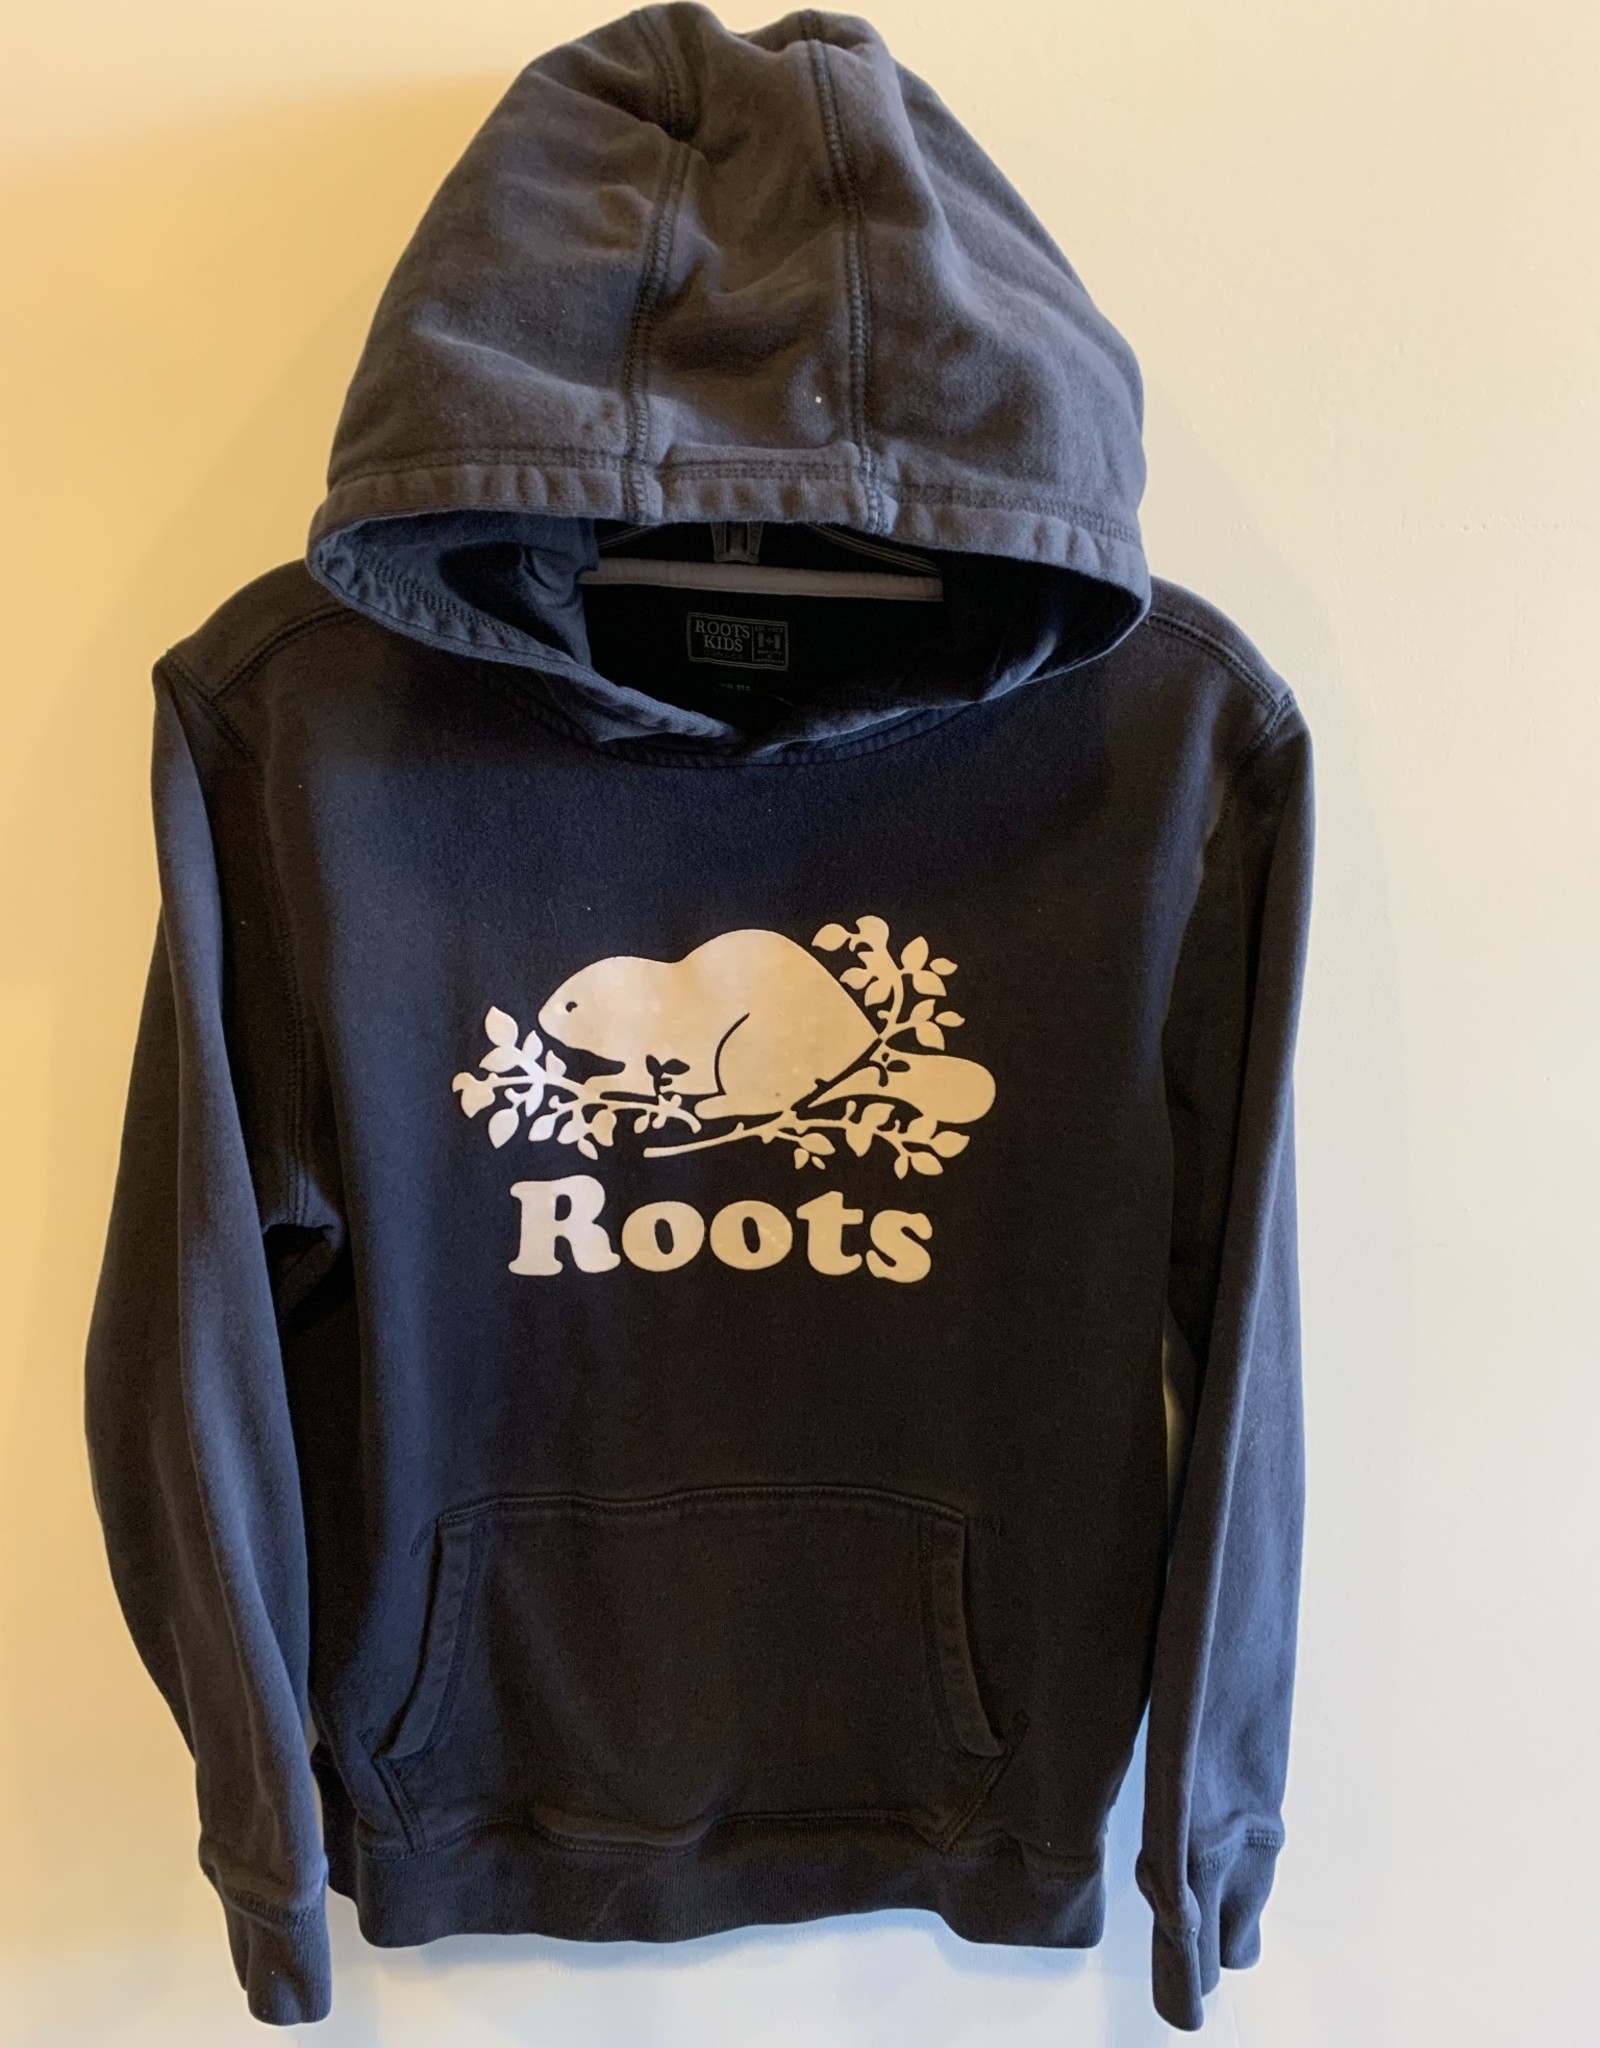 Roots Boys/13/Roots/Sweater